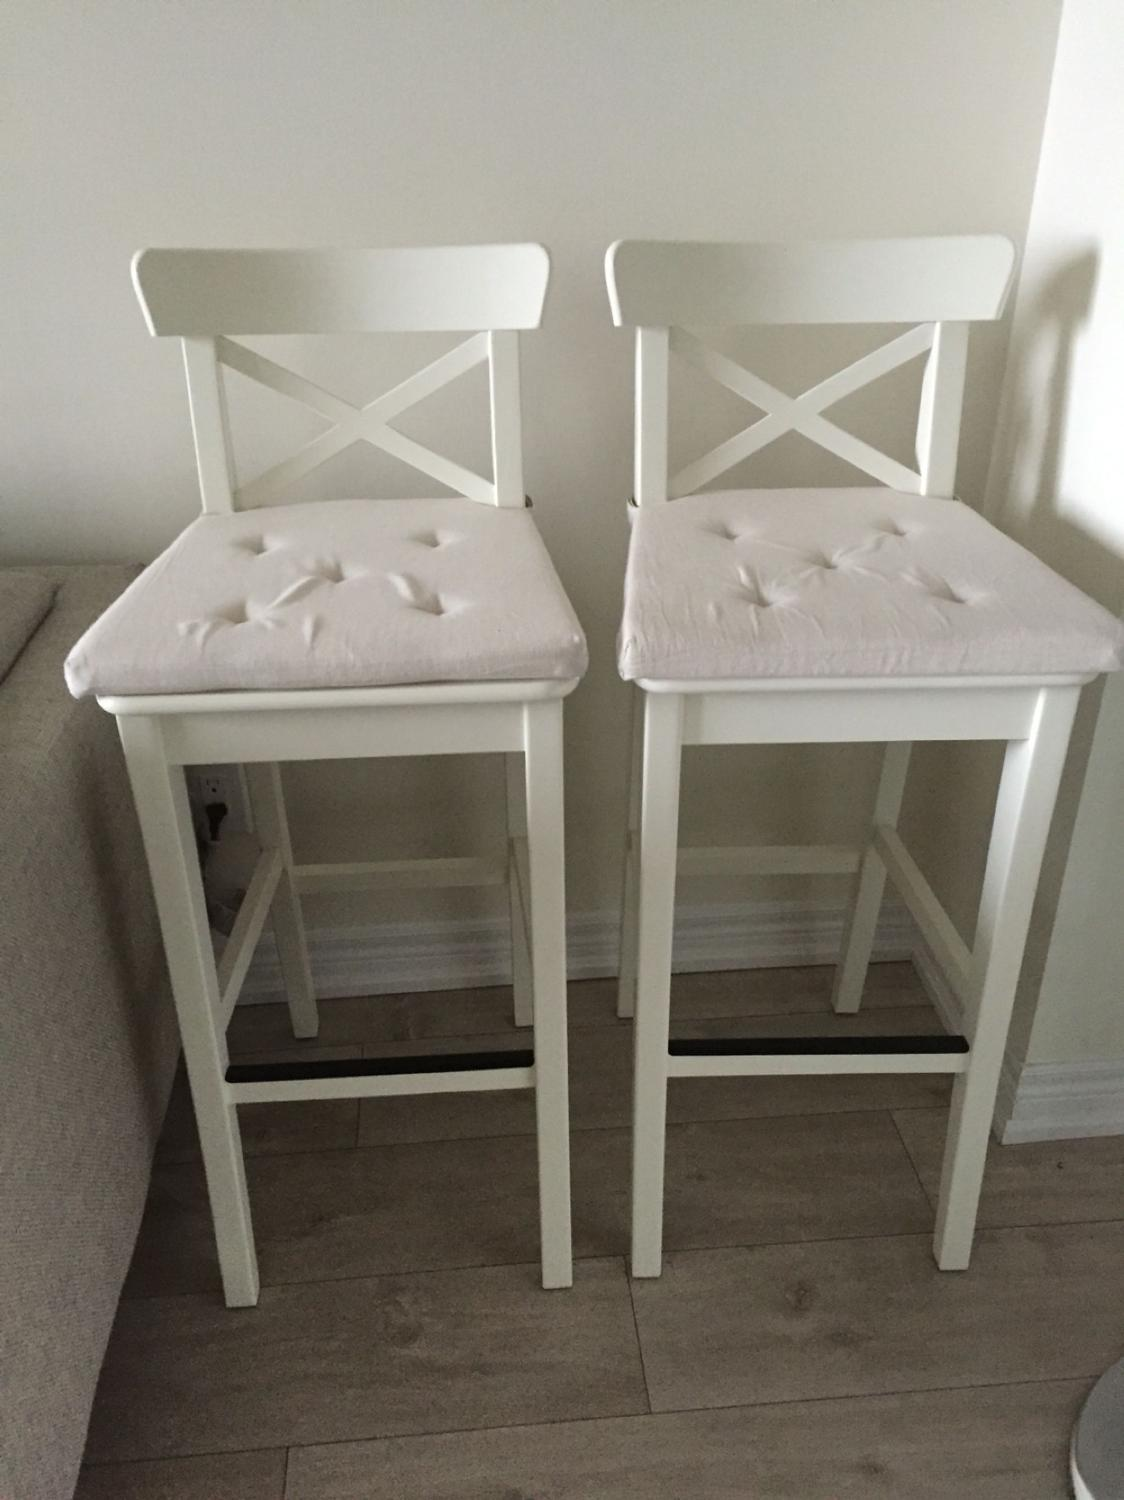 Best Ikea Ingolf Bar Stools For Sale. Barely Used And Comes With ...